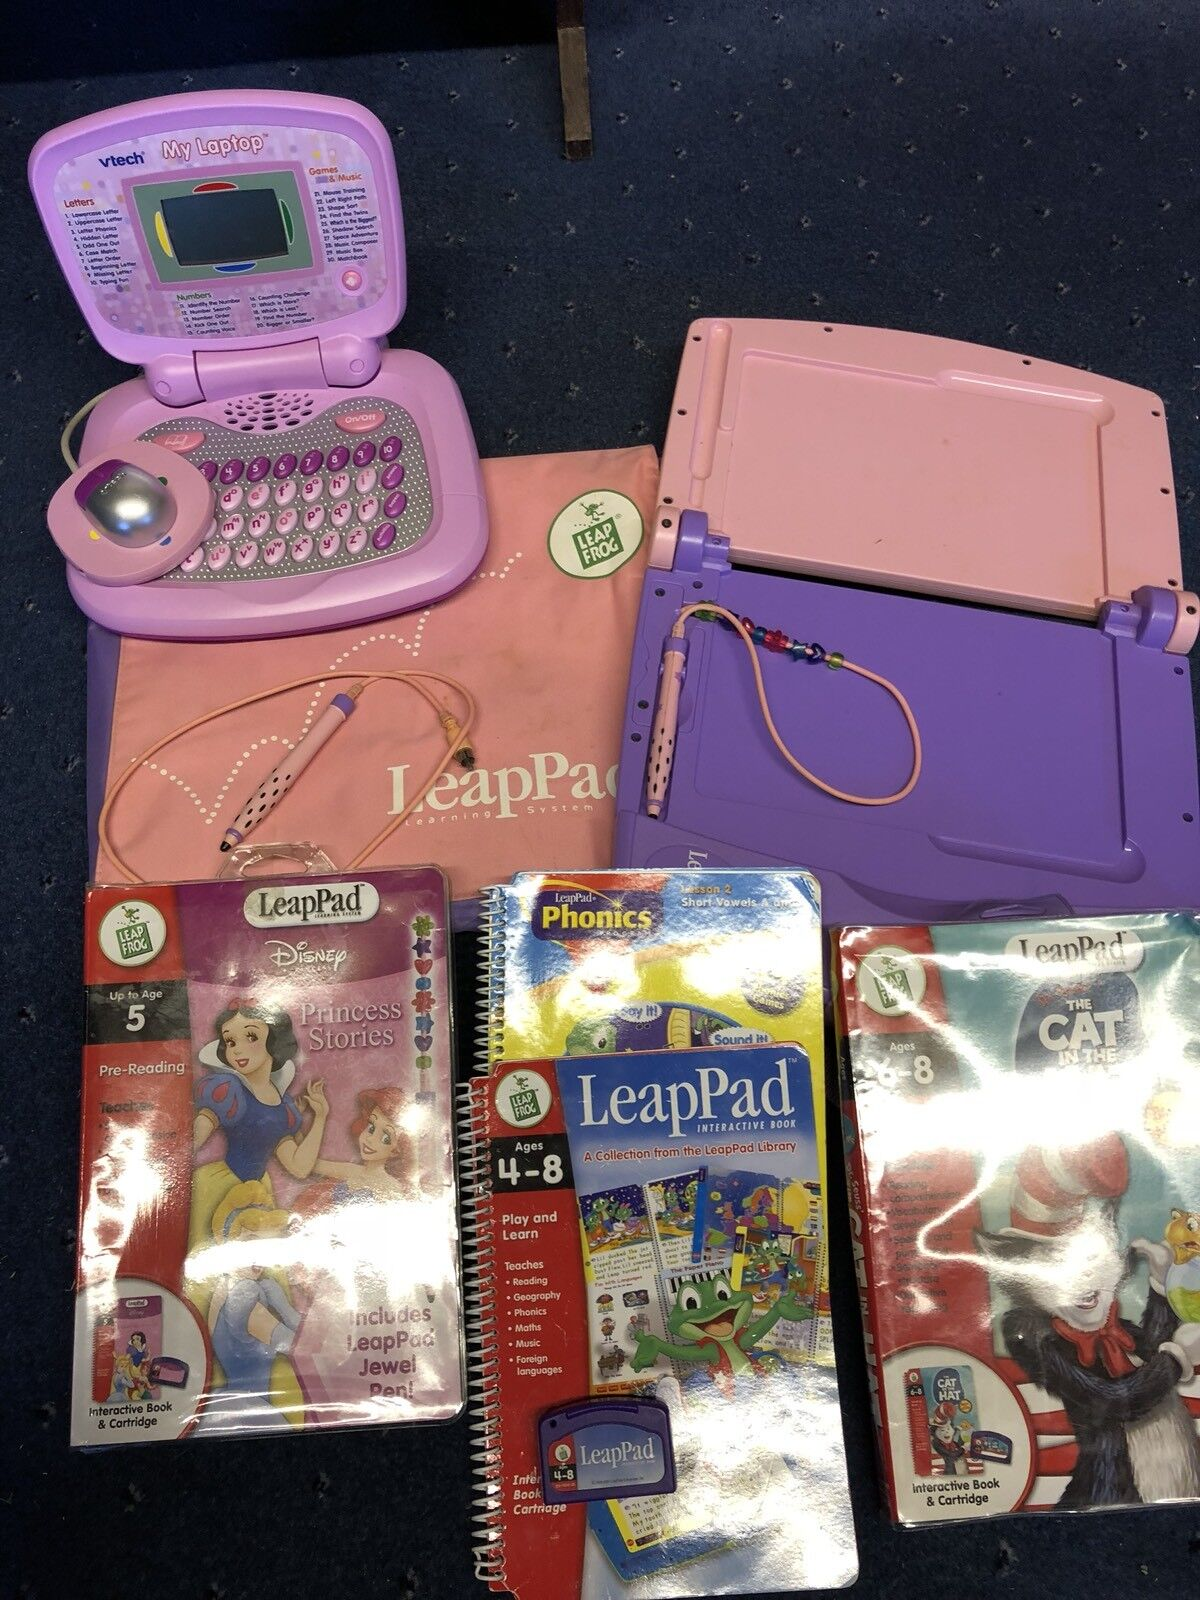 Leapfrog Leappad Learning System Princess Stories Cat In The Hat & Vtech Laptop